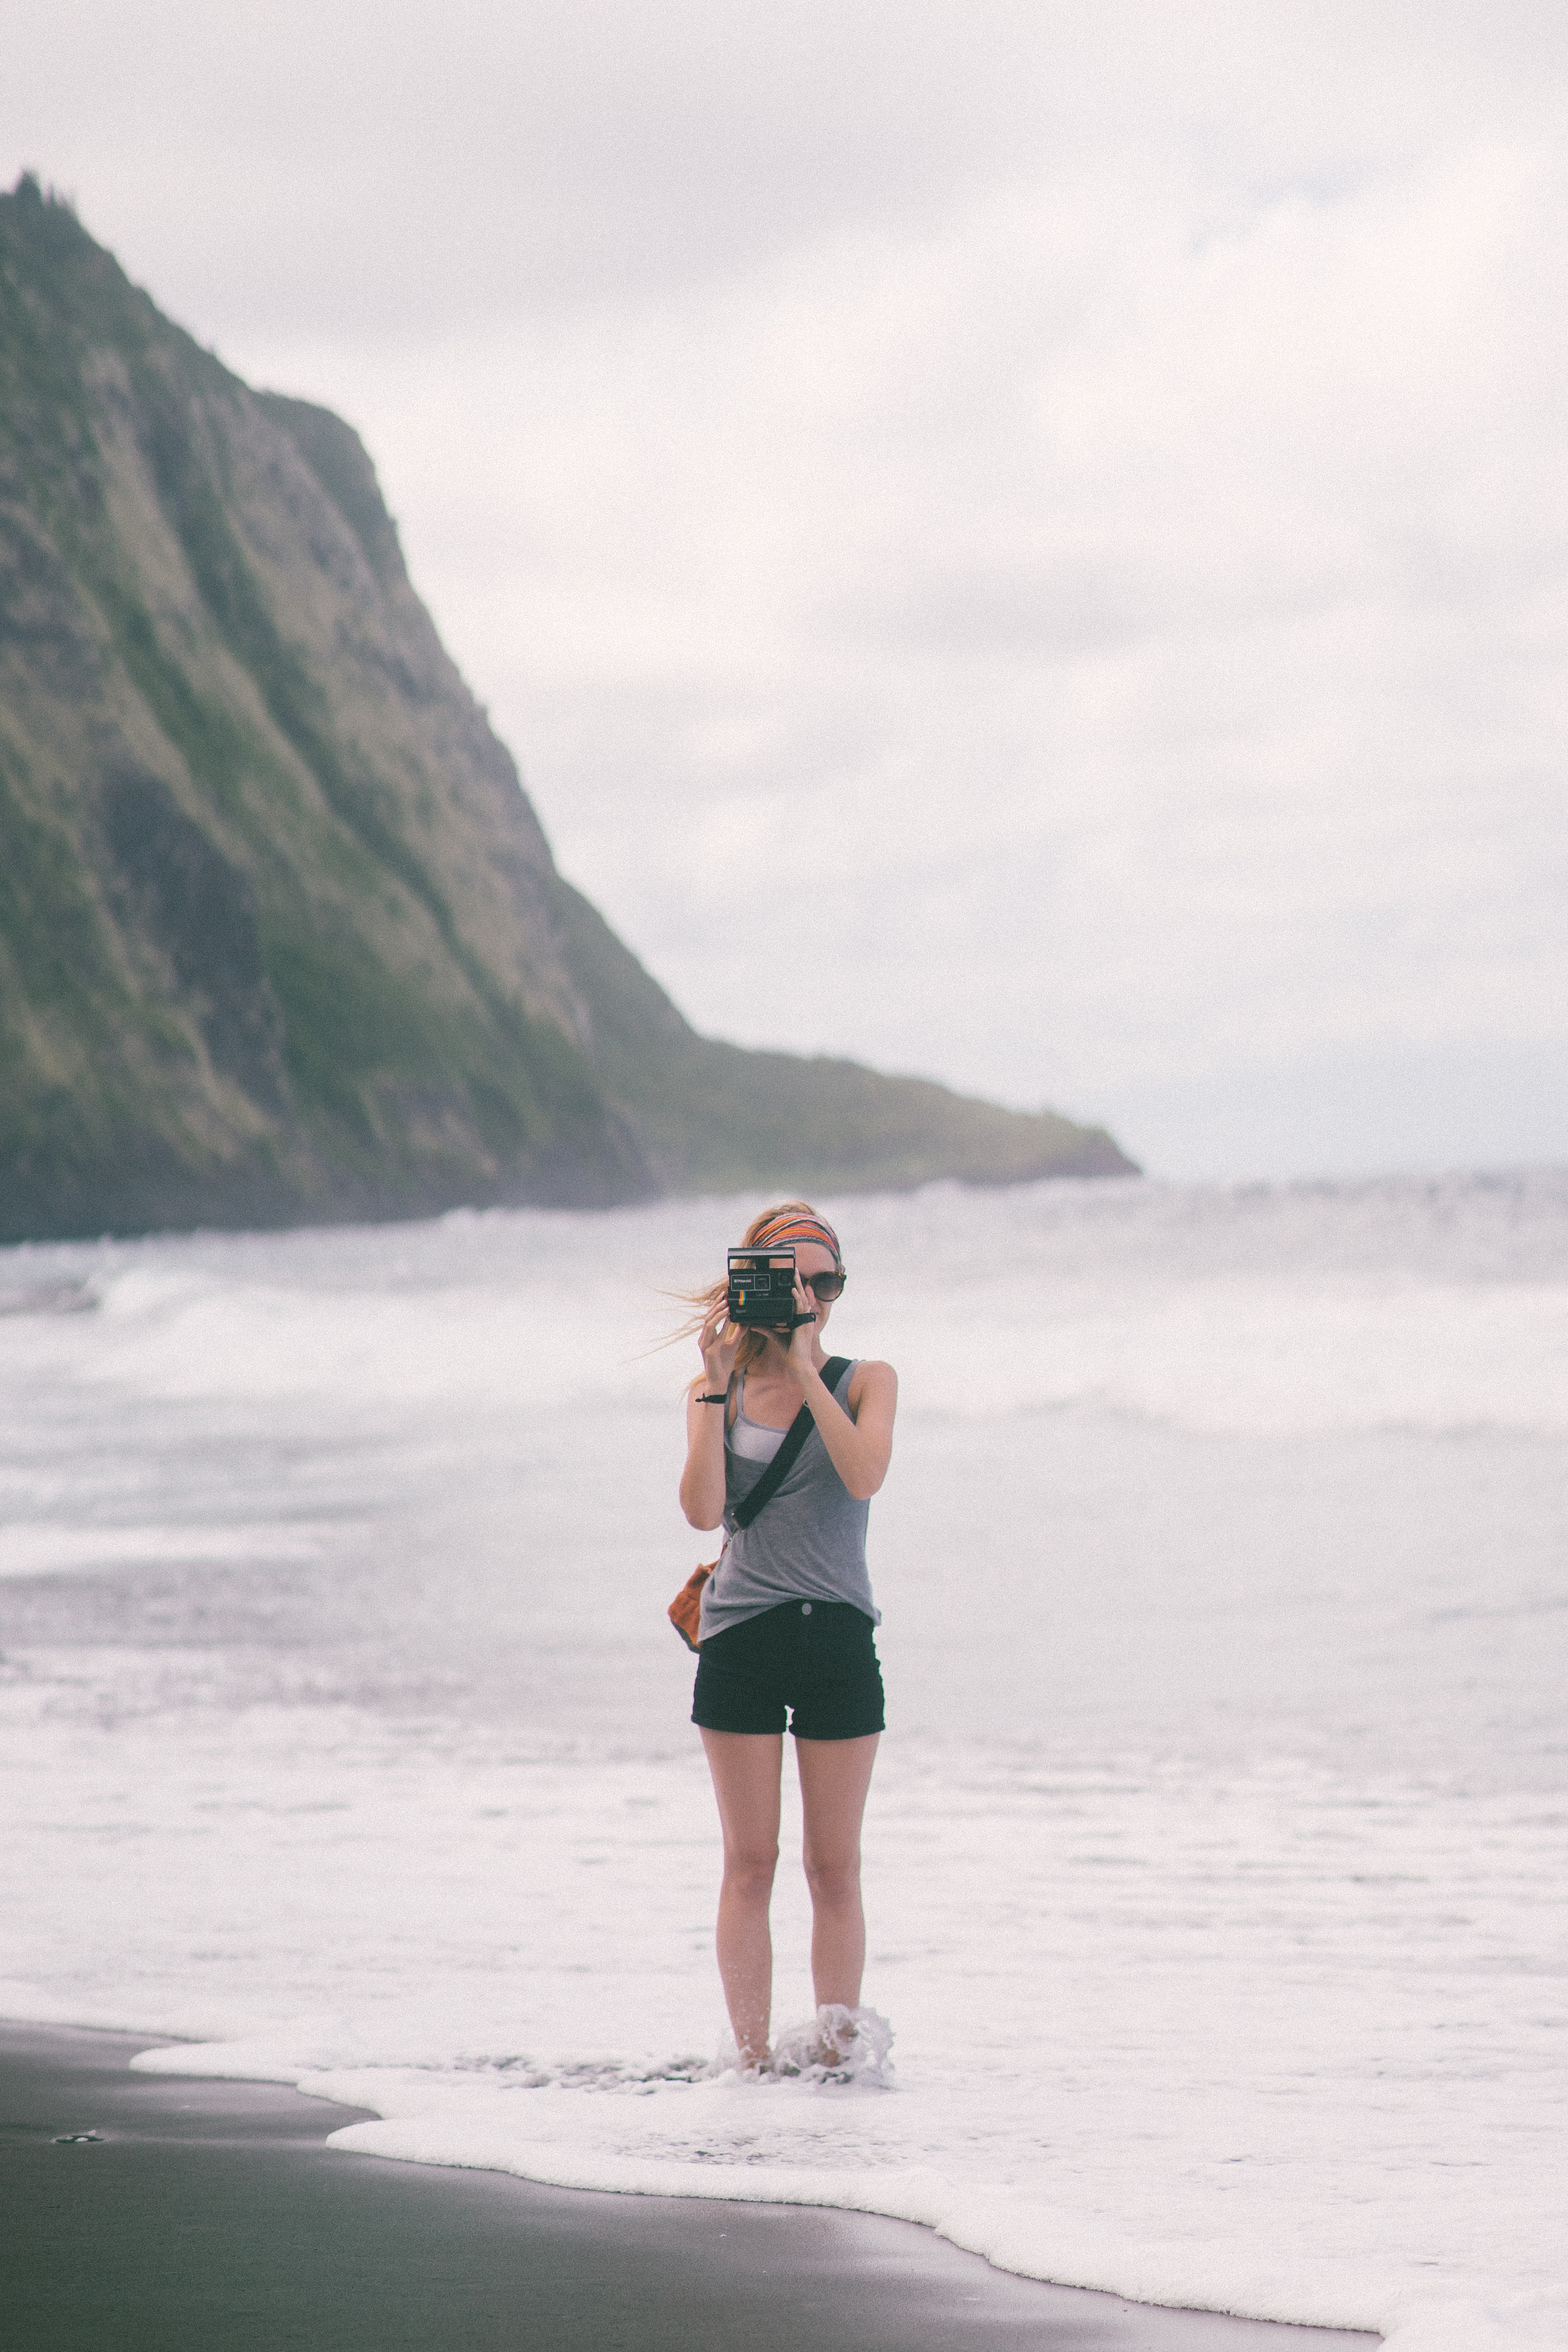 Young woman standing on the beach and taking a photo with a Polaroid camera